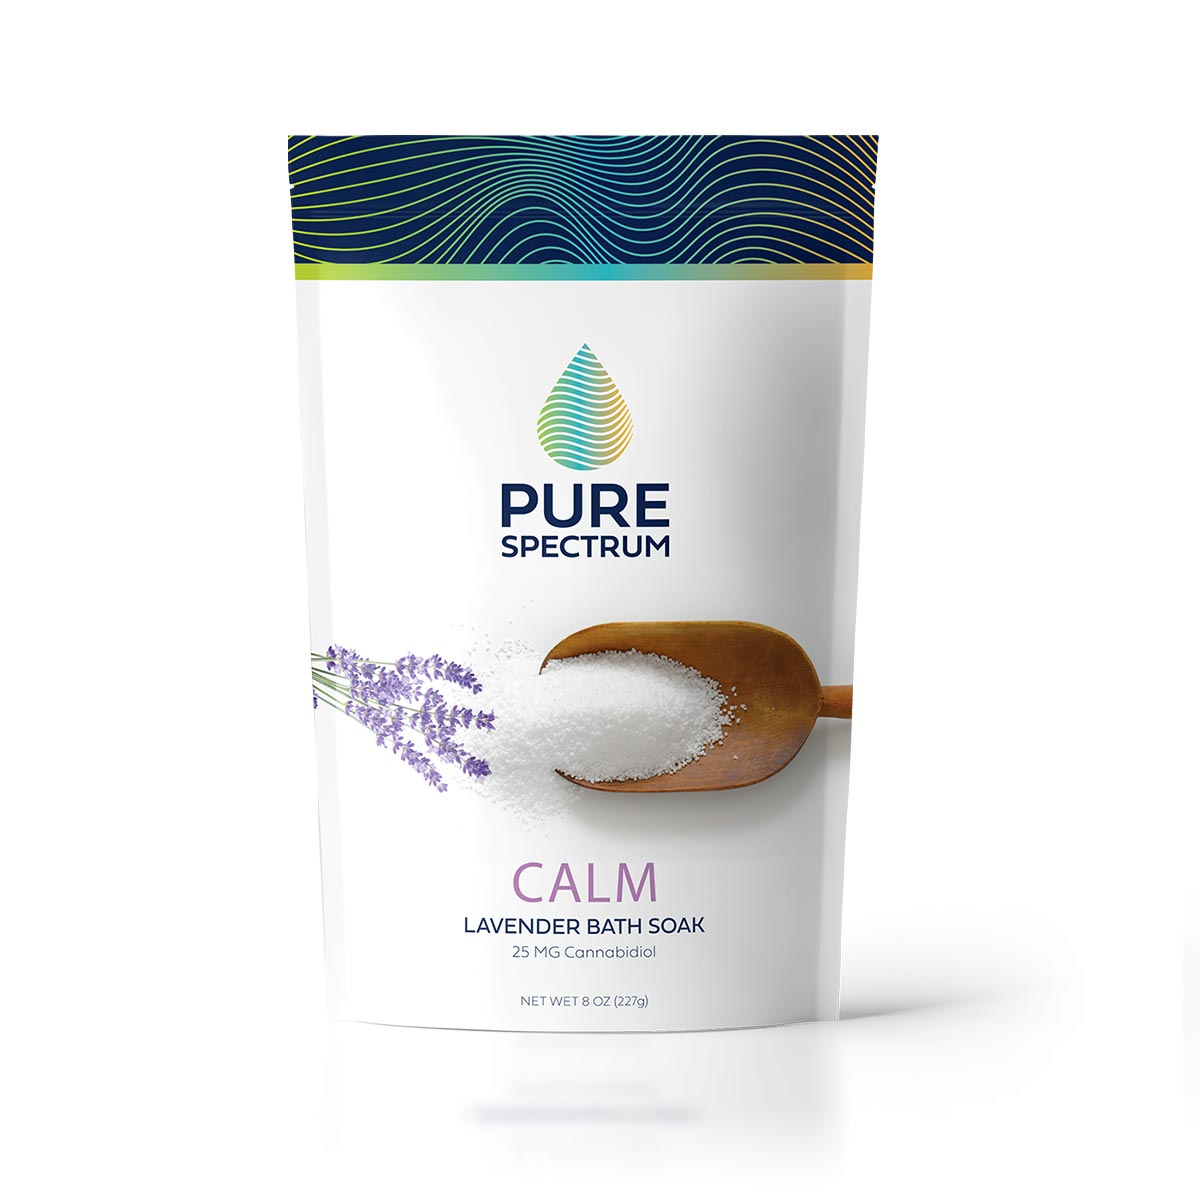 Pure Spectrum, Calm Lavender Bath Soak, 8oz, 25mg of CBD